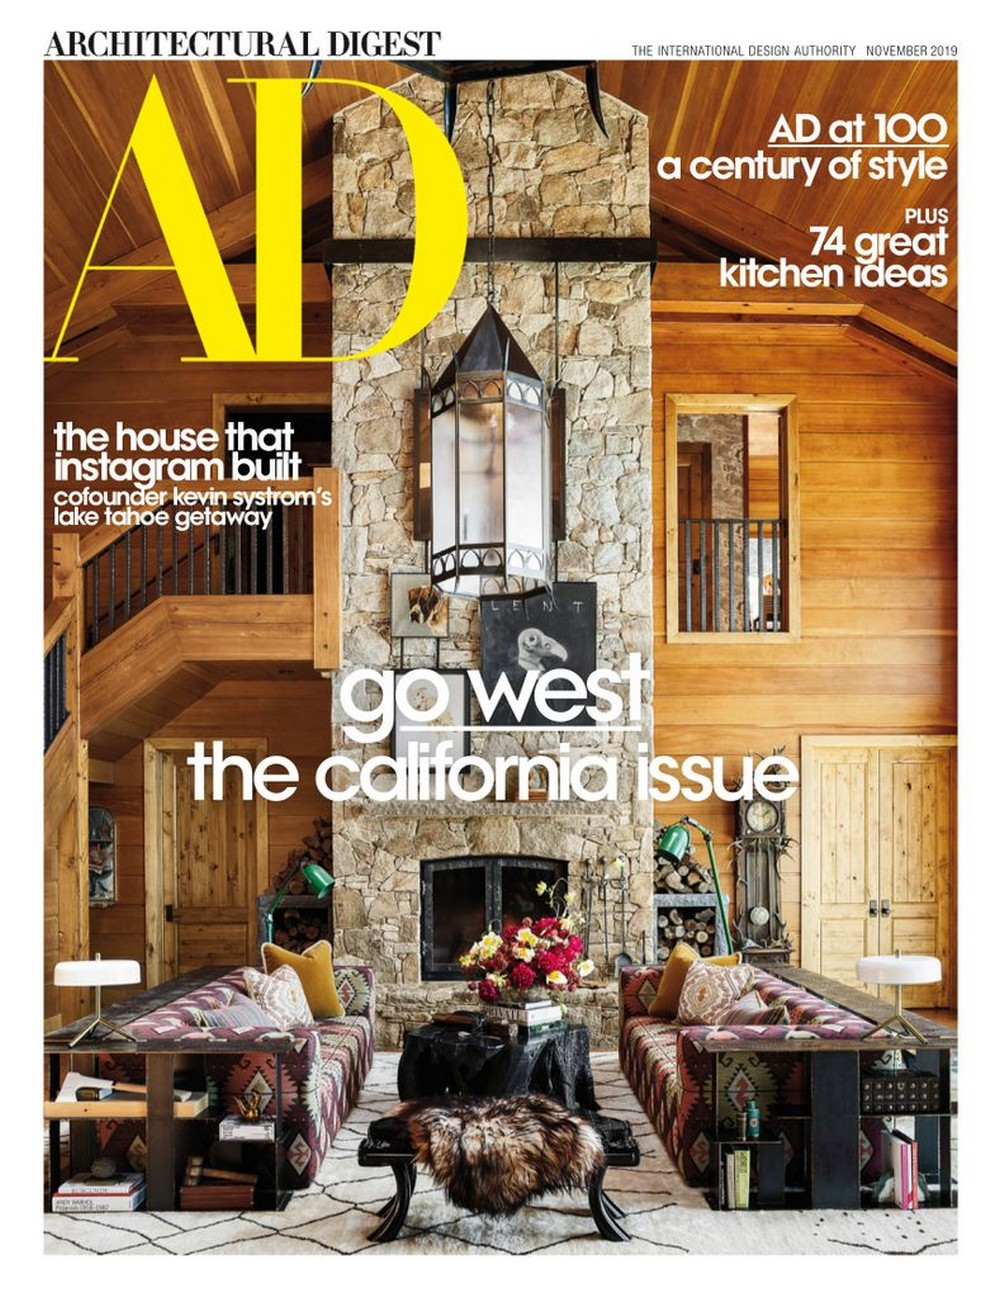 Top 7 Interior Design Magazines You Should Buy In November! interior design magazines Top 7 Interior Design Magazines You Should  Buy In November! Top 7 Interior Design Magazines You Should Buy In November 6